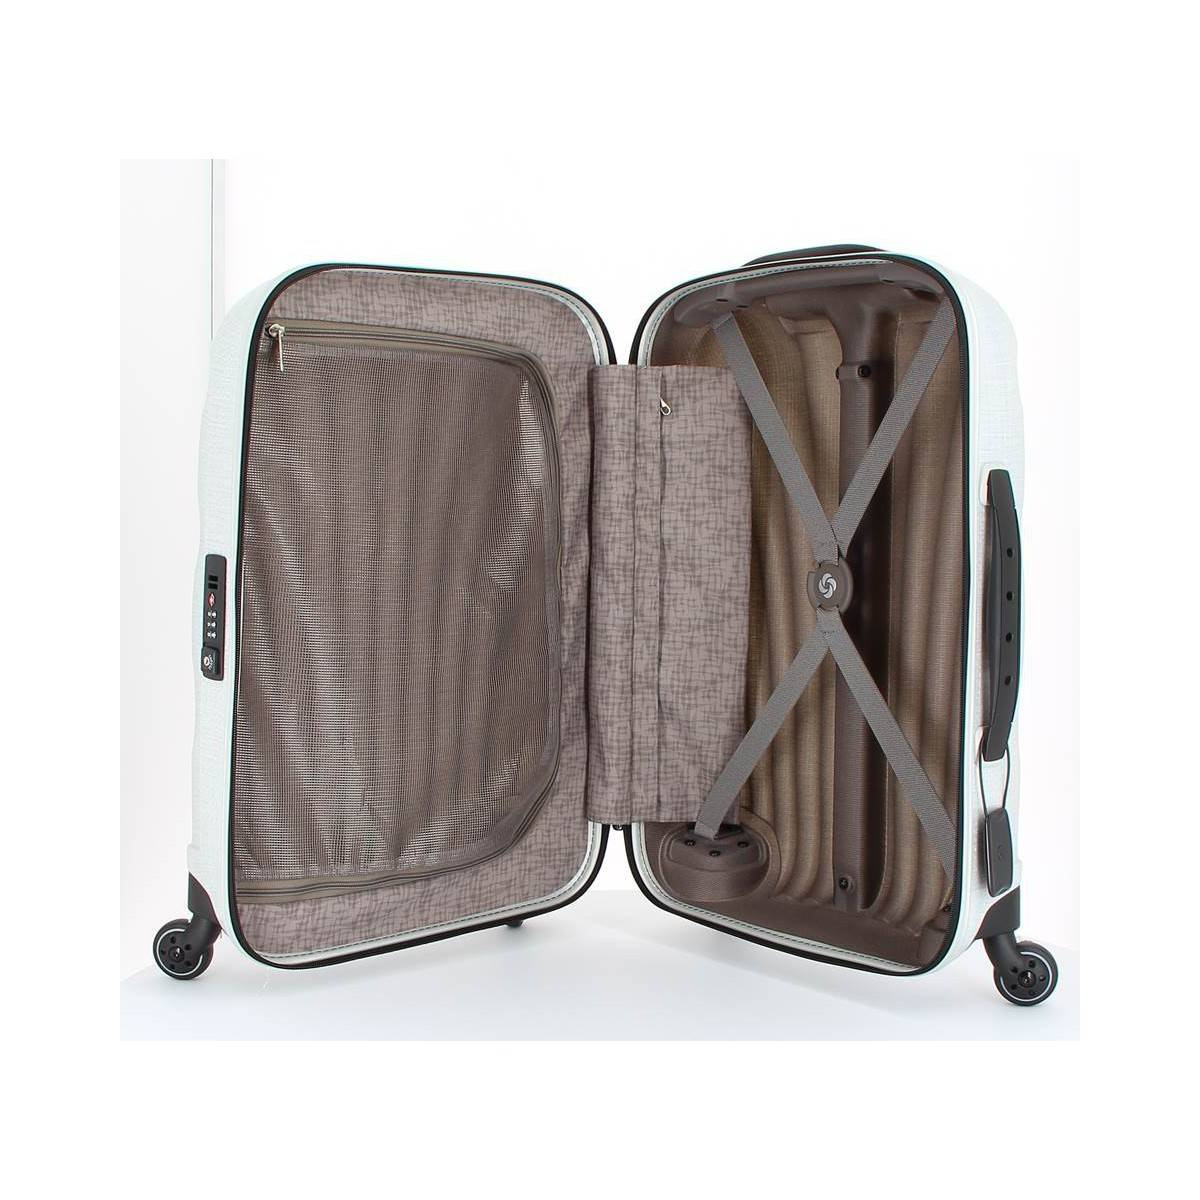 samsonite valise rigide taille cabine lite locked 57356. Black Bedroom Furniture Sets. Home Design Ideas